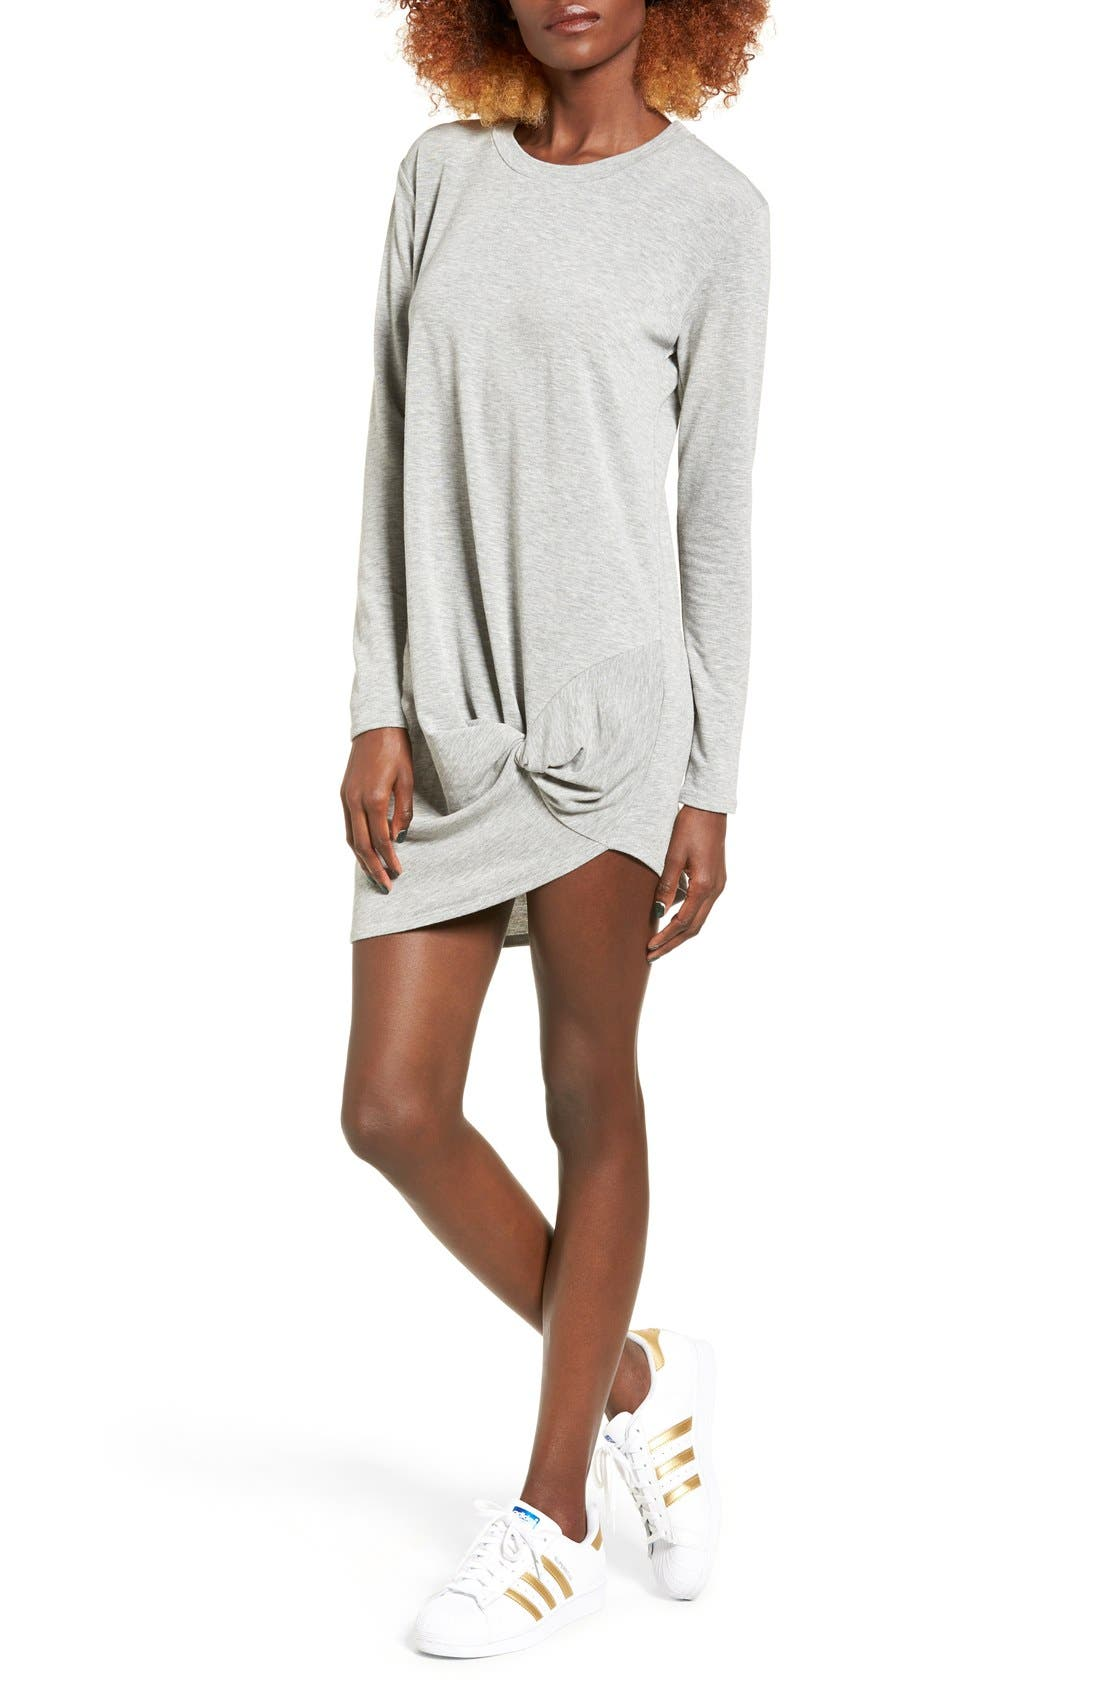 Main Image - Michelle by Comune Woodway Knotted Hem T-Shirt Dress